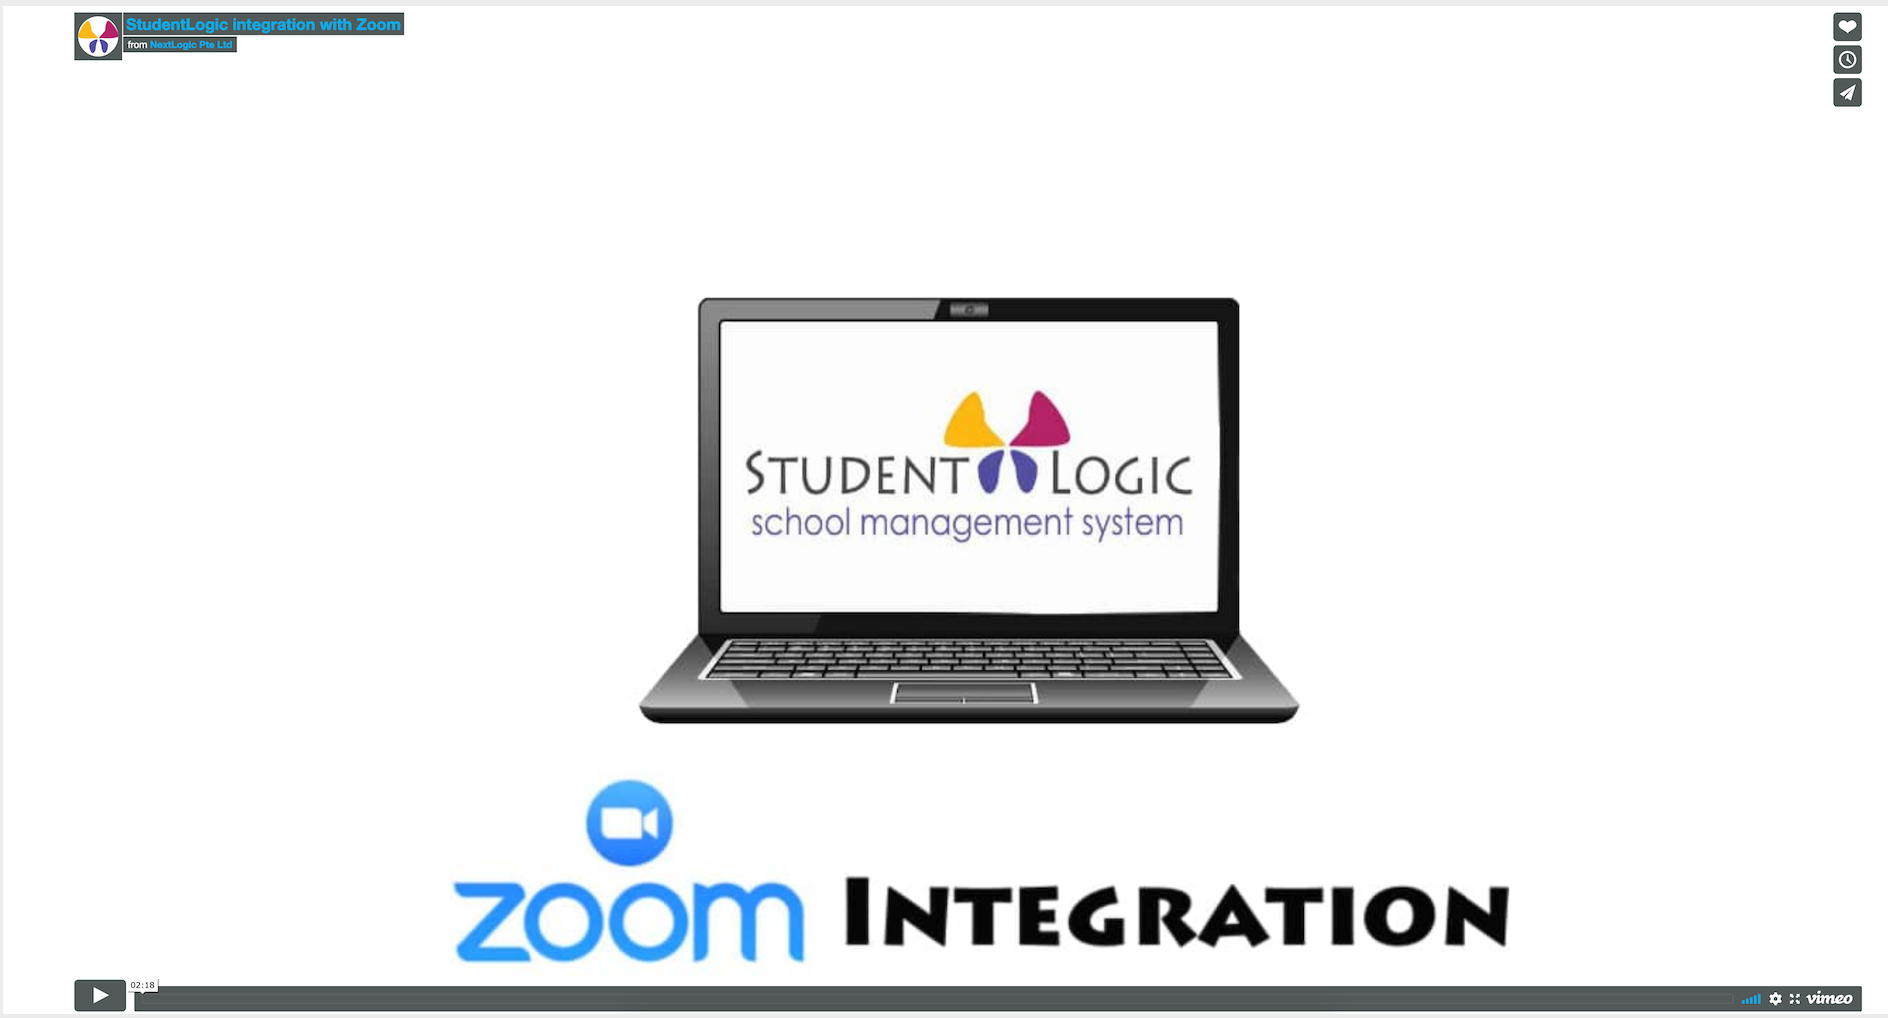 zoomintegration